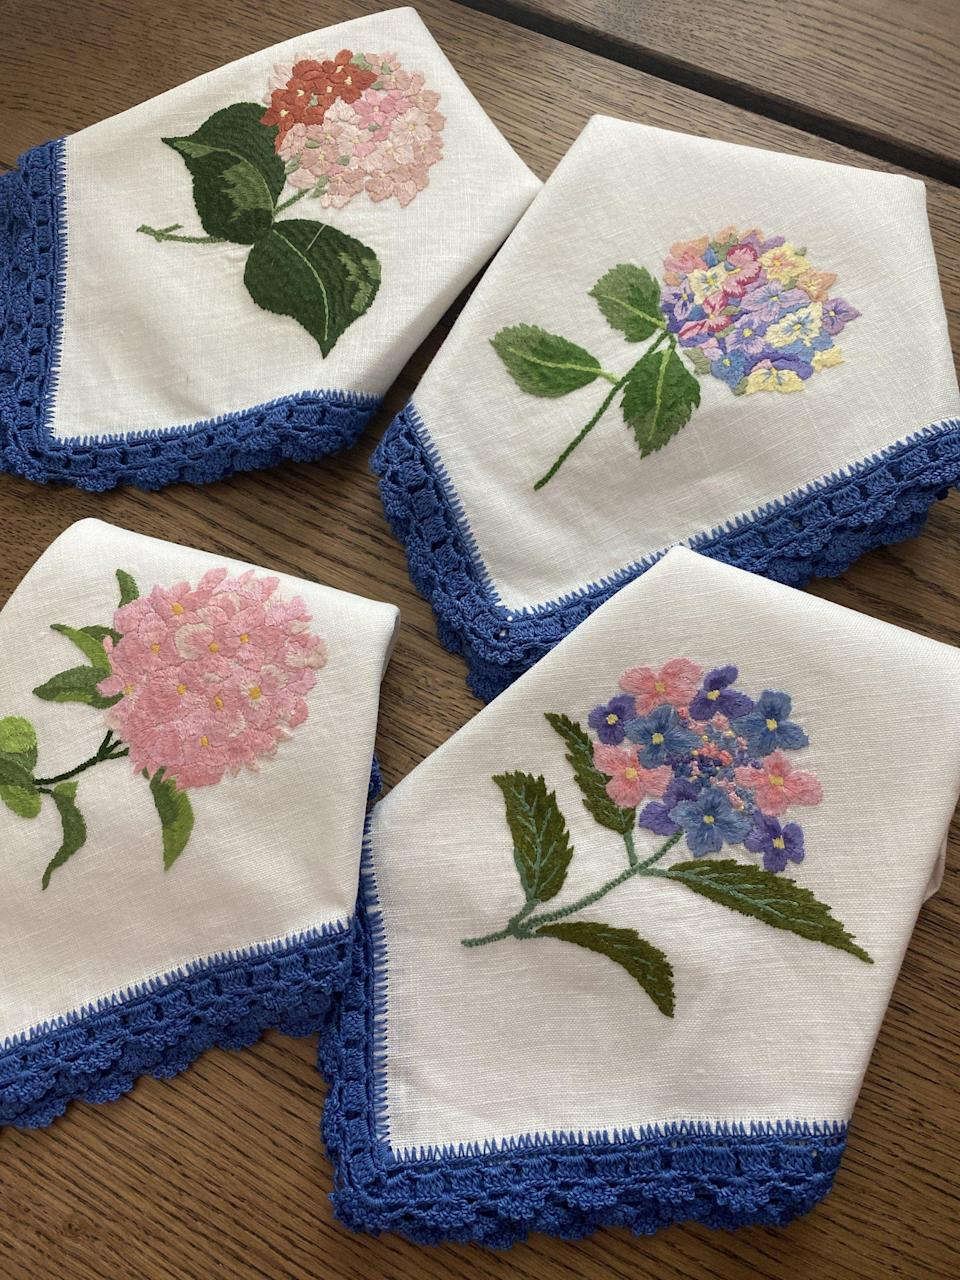 """<p>hibiscuslinens.com</p><p><strong>$800.00</strong></p><p><a href=""""https://www.hibiscuslinens.com/collections/signature-collection/products/hydrangea-napkins-set-of-4"""" rel=""""nofollow noopener"""" target=""""_blank"""" data-ylk=""""slk:Shop Now"""" class=""""link rapid-noclick-resp"""">Shop Now</a></p><p>""""The more I stay home and work remotely, the more I love the idea of decorating my space with special pieces like these Hydrangea Dinner Napkins. I am already looking forward to future dinner parties at home with my closest friends. The brand, Hibiscus Linens, offers the option for made-to-order pieces for that extra special touch! They also offer classes to learn about the traditional Mexican needlework technique used in their designs.""""—<em>Dania Ortiz, Fashion and Accessories Director</em></p>"""